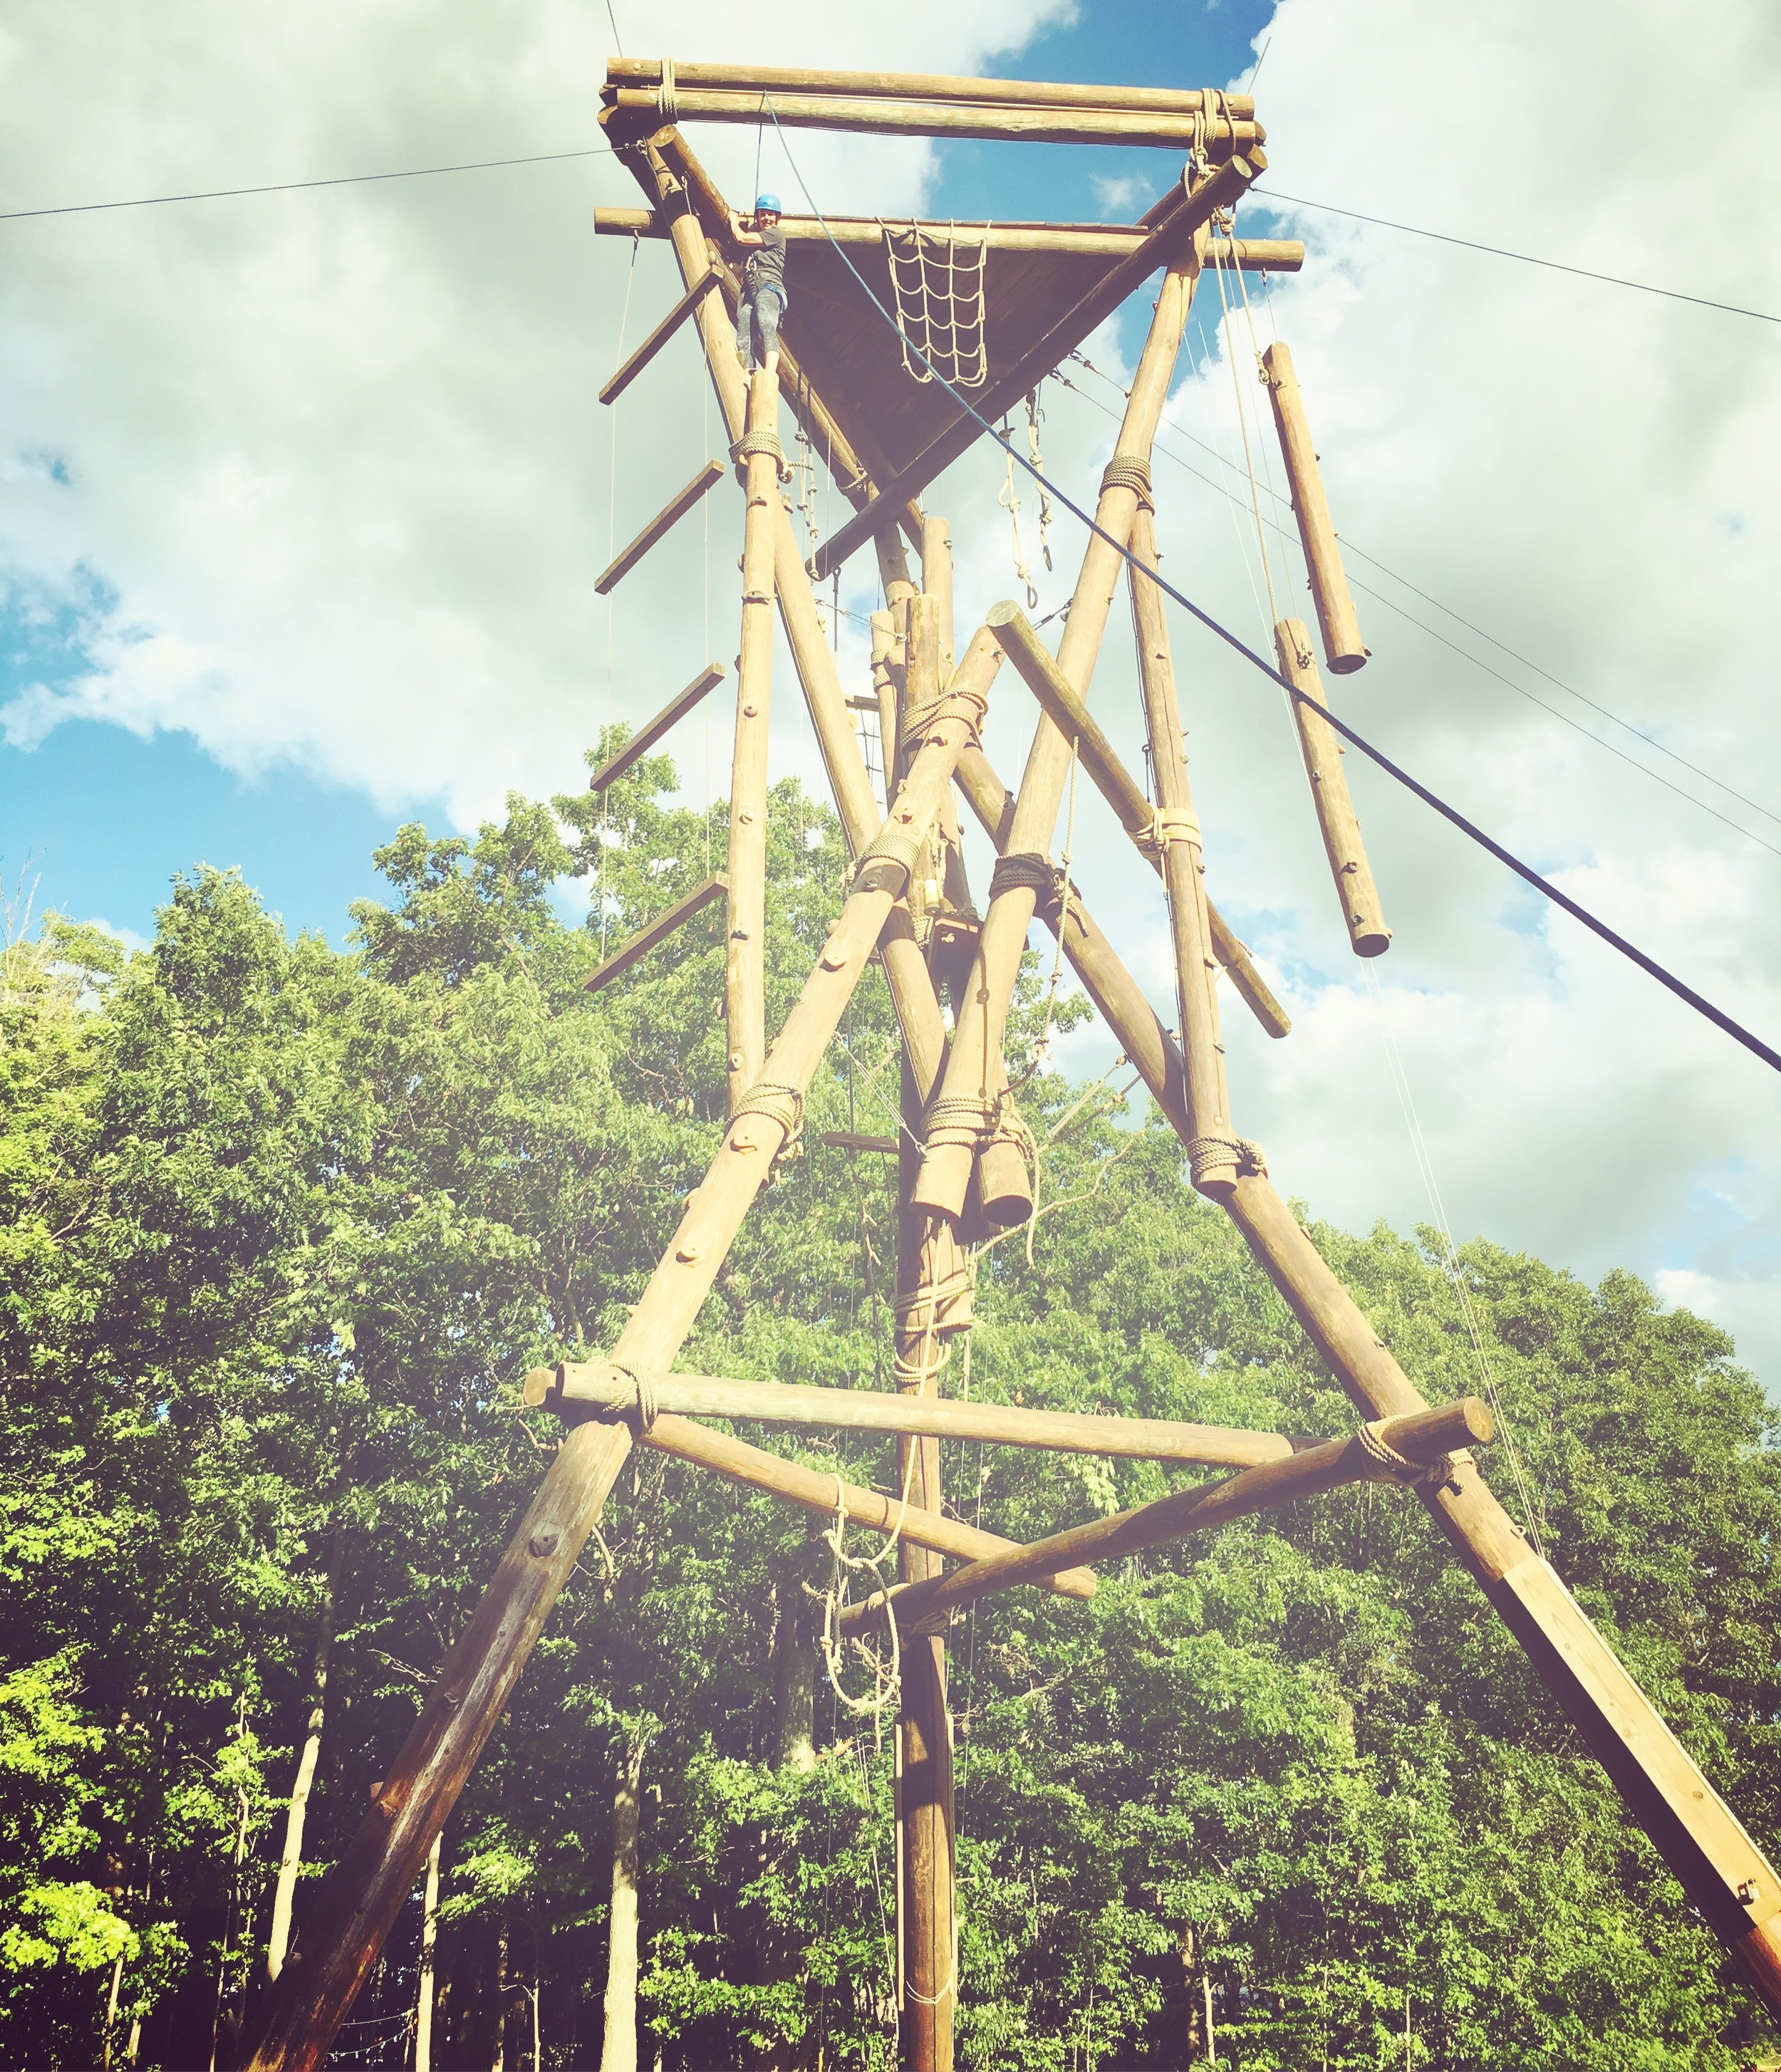 """This is me conquering another """"skill"""" at camp - the 50 foot tower! Nothing like having your """"mom rear-end"""" all harnessed for everyone to stare at while you struggle and climb... haha. But I did it. """"I do hard things."""" There's a book about that....."""